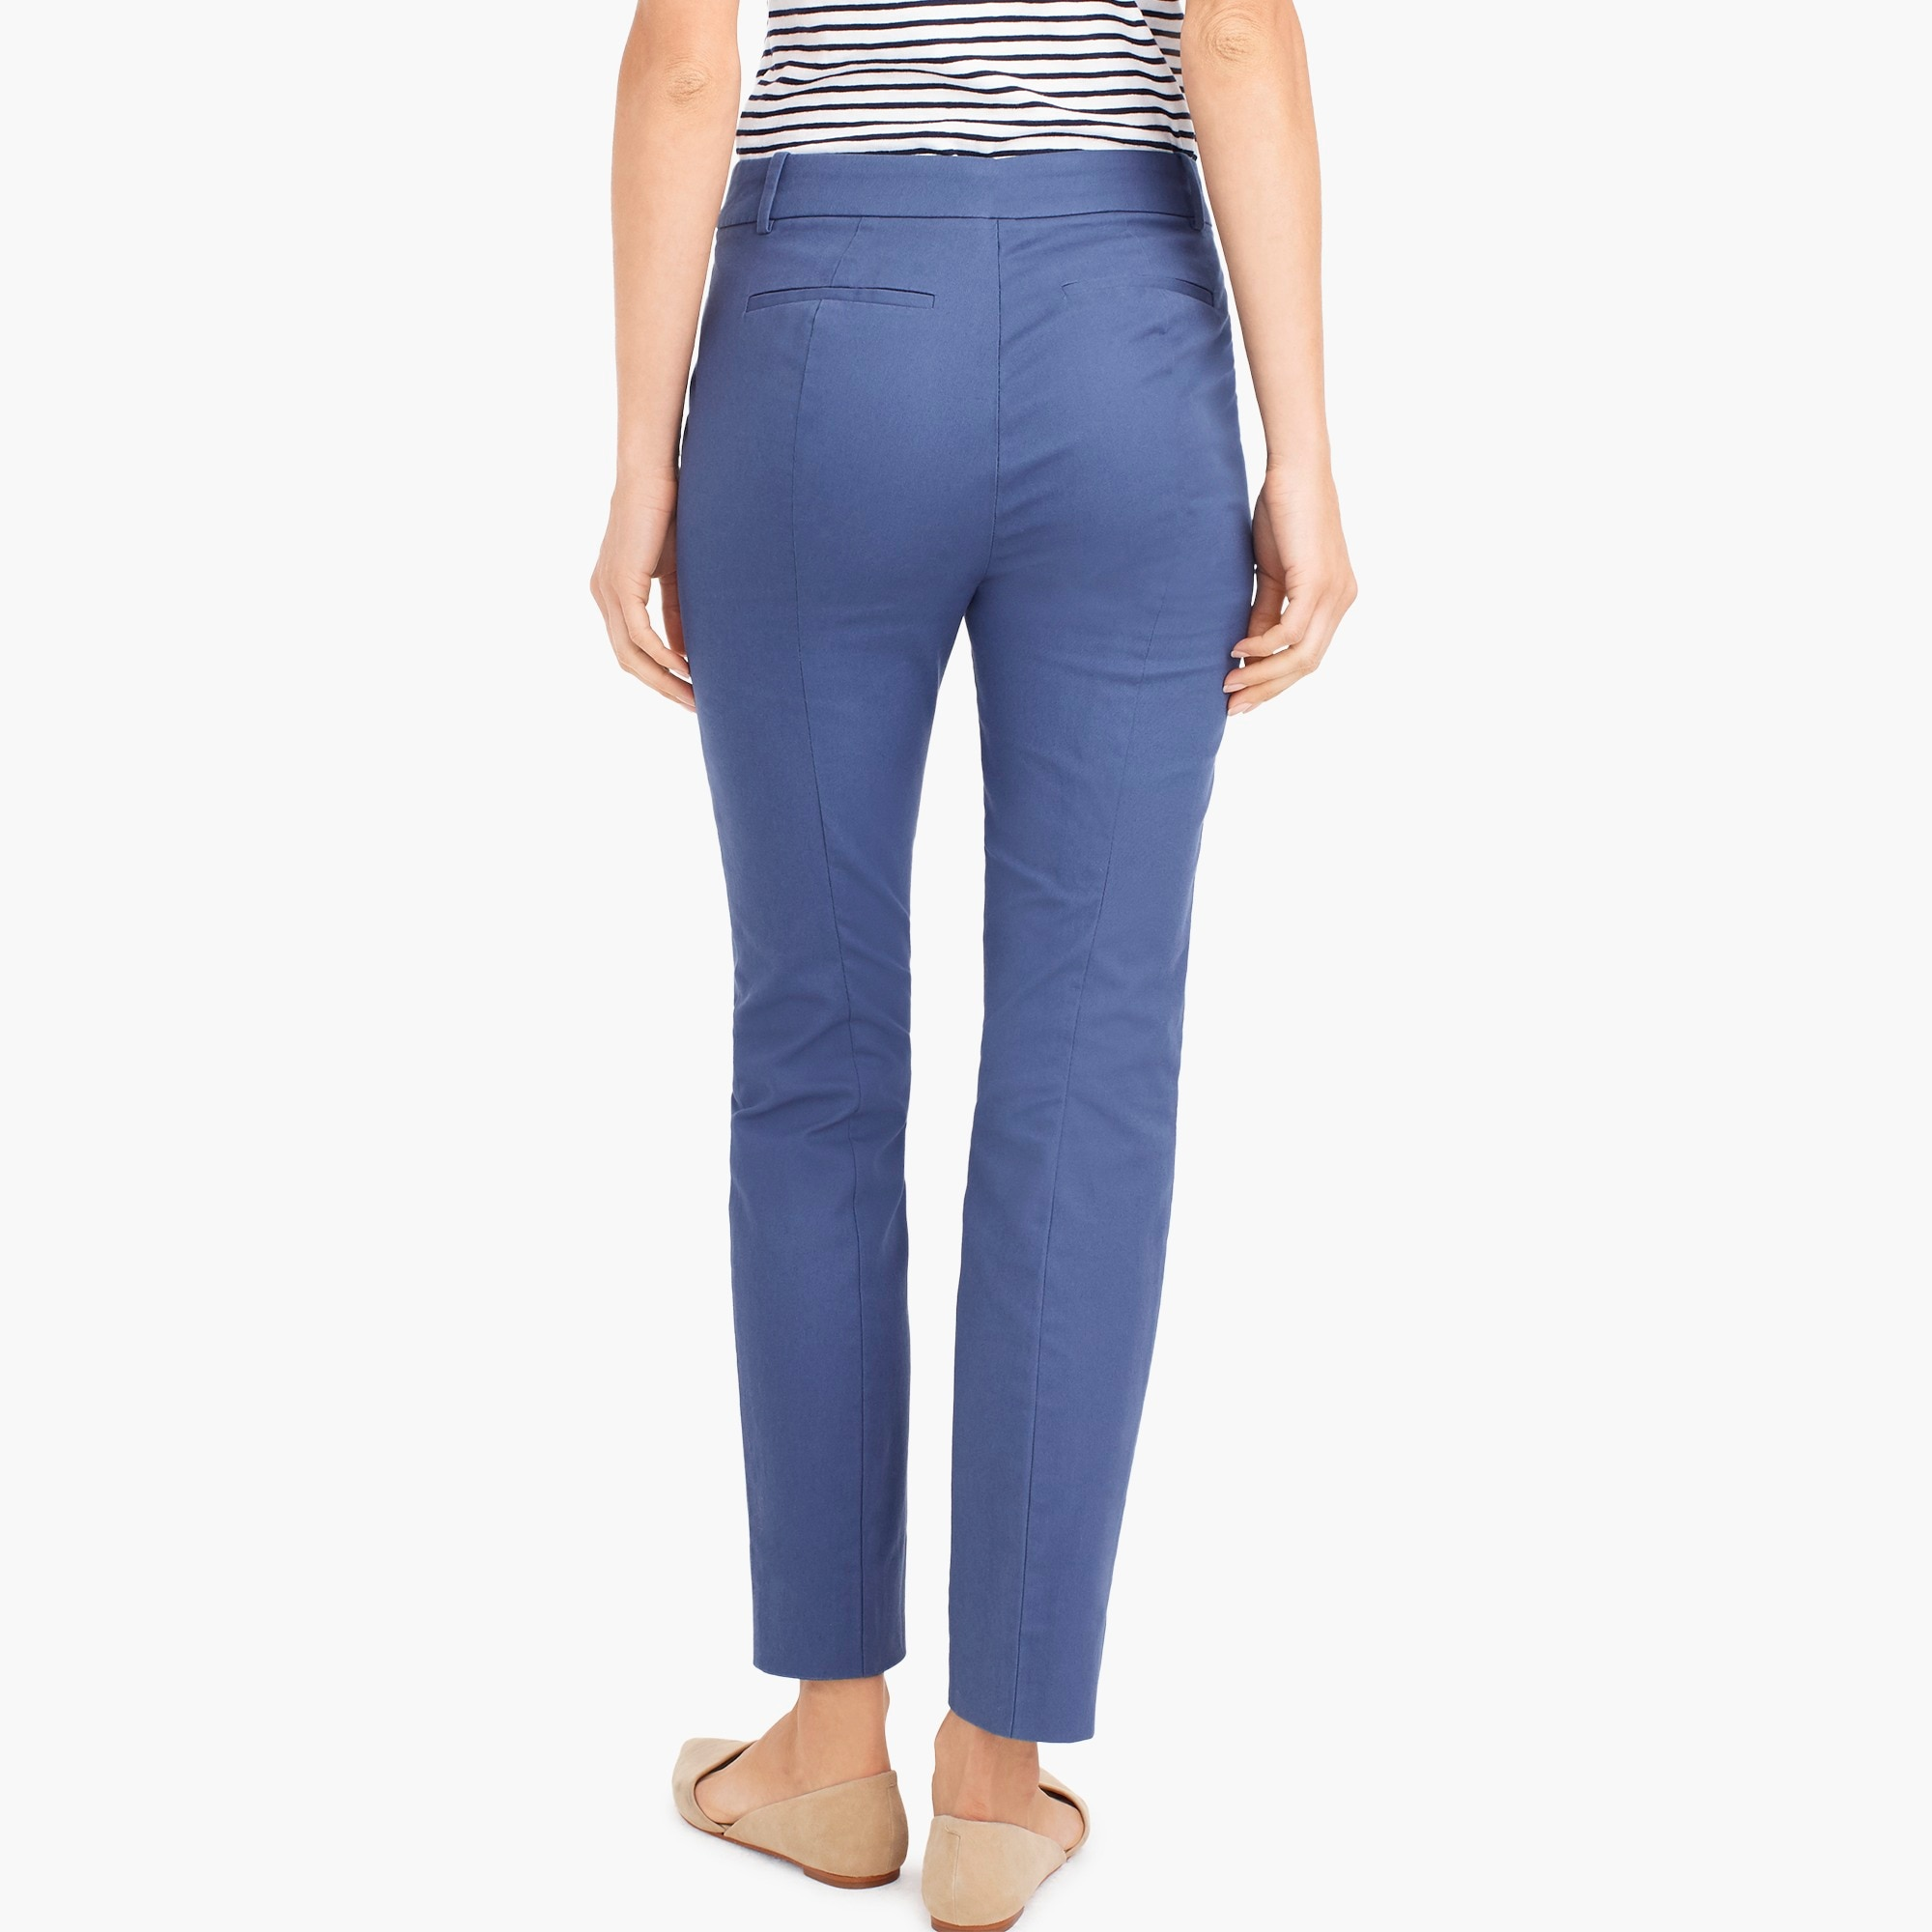 Image 6 for Petite effortless slim crop chino pant